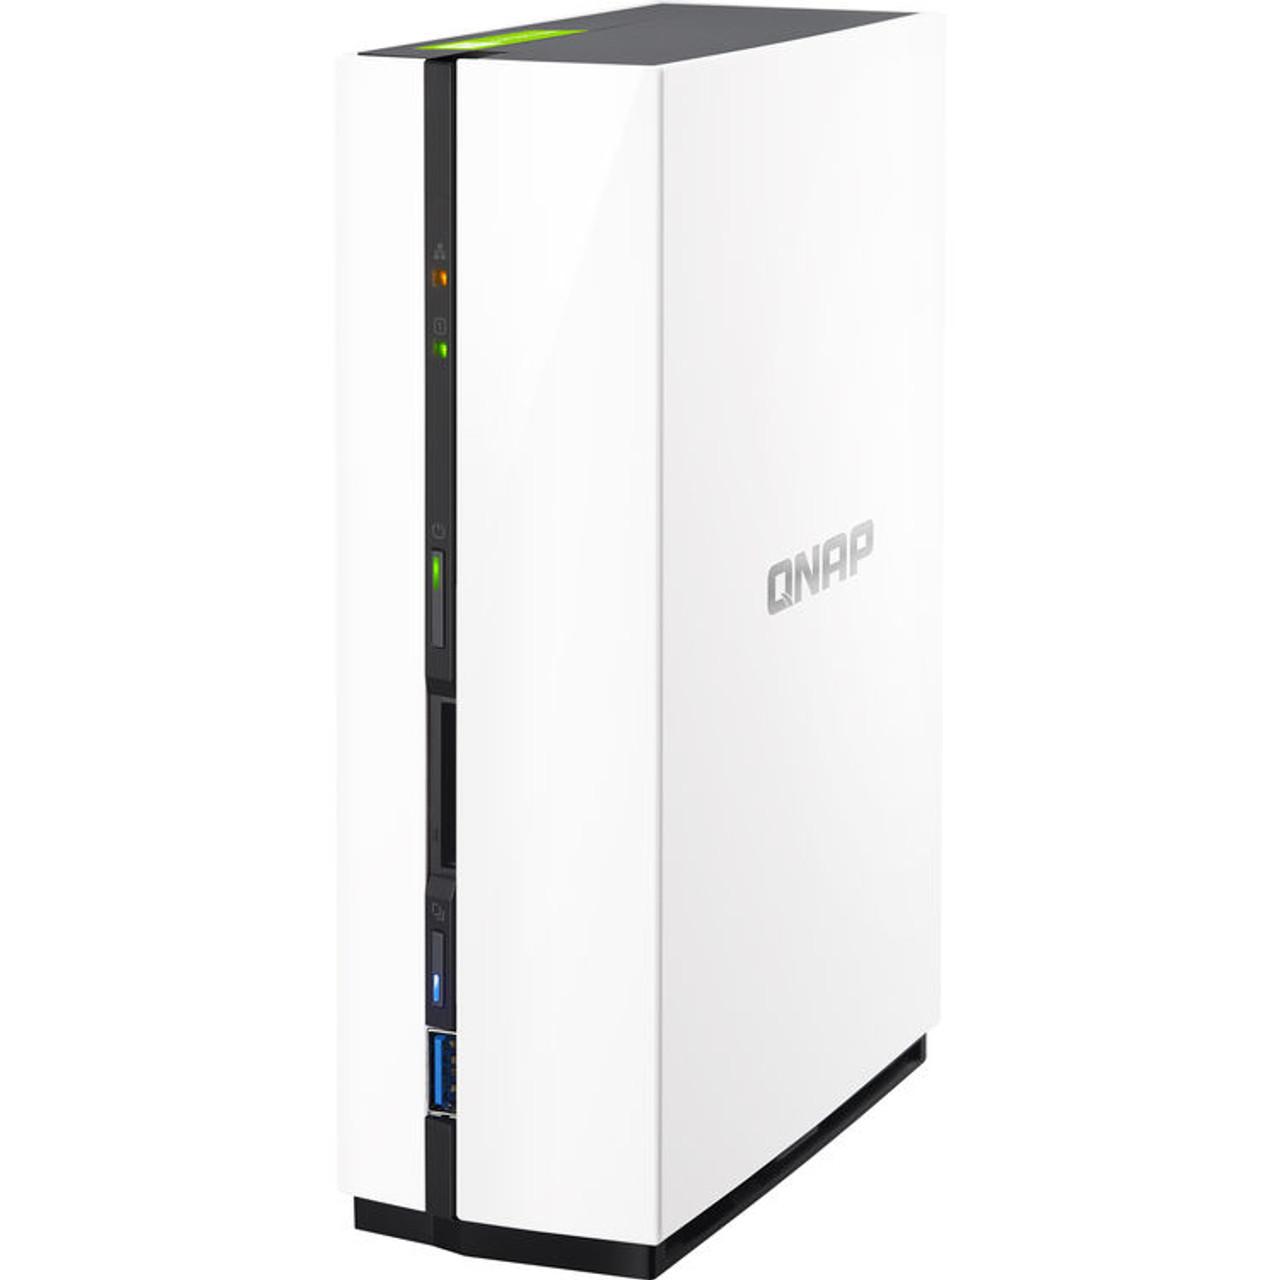 QNAP 1-Bay Personal Cloud NAS for Backup with DLNA